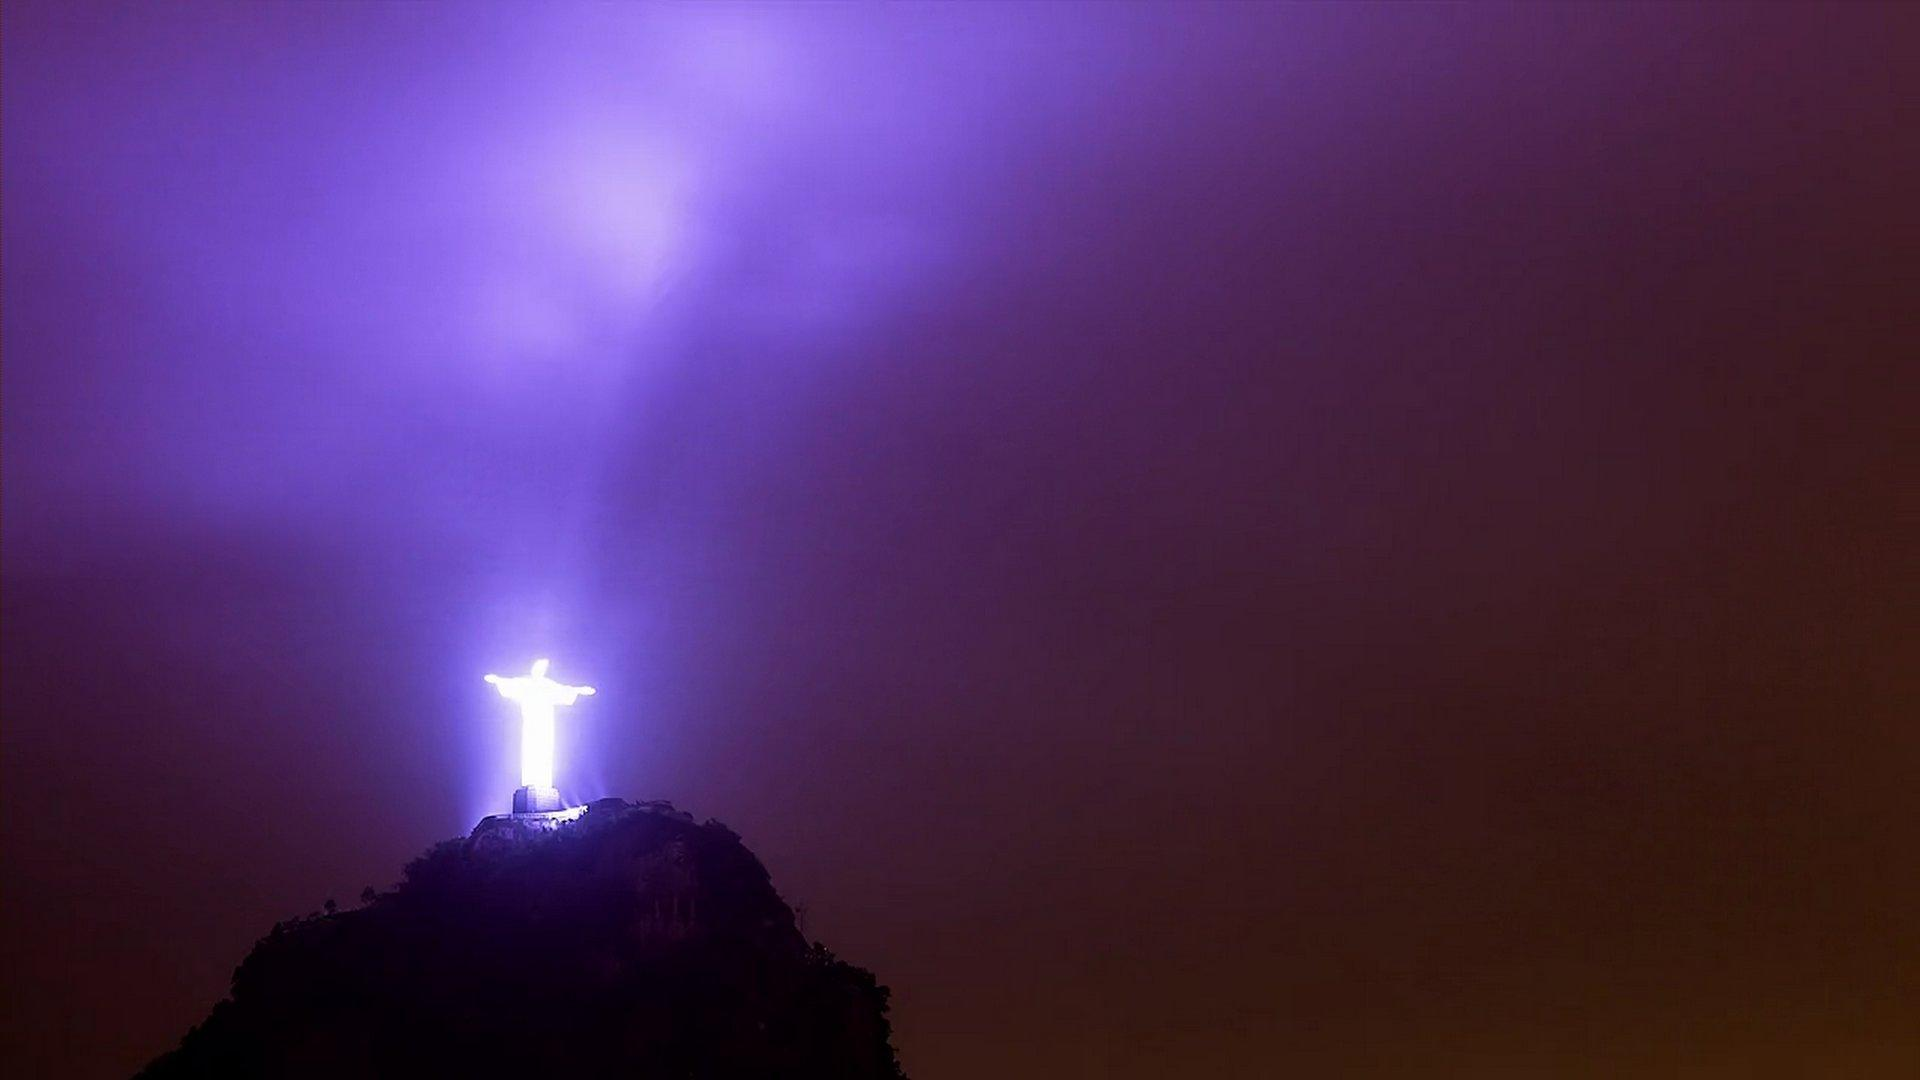 Lit-up Christ statue in Rio, Brazil